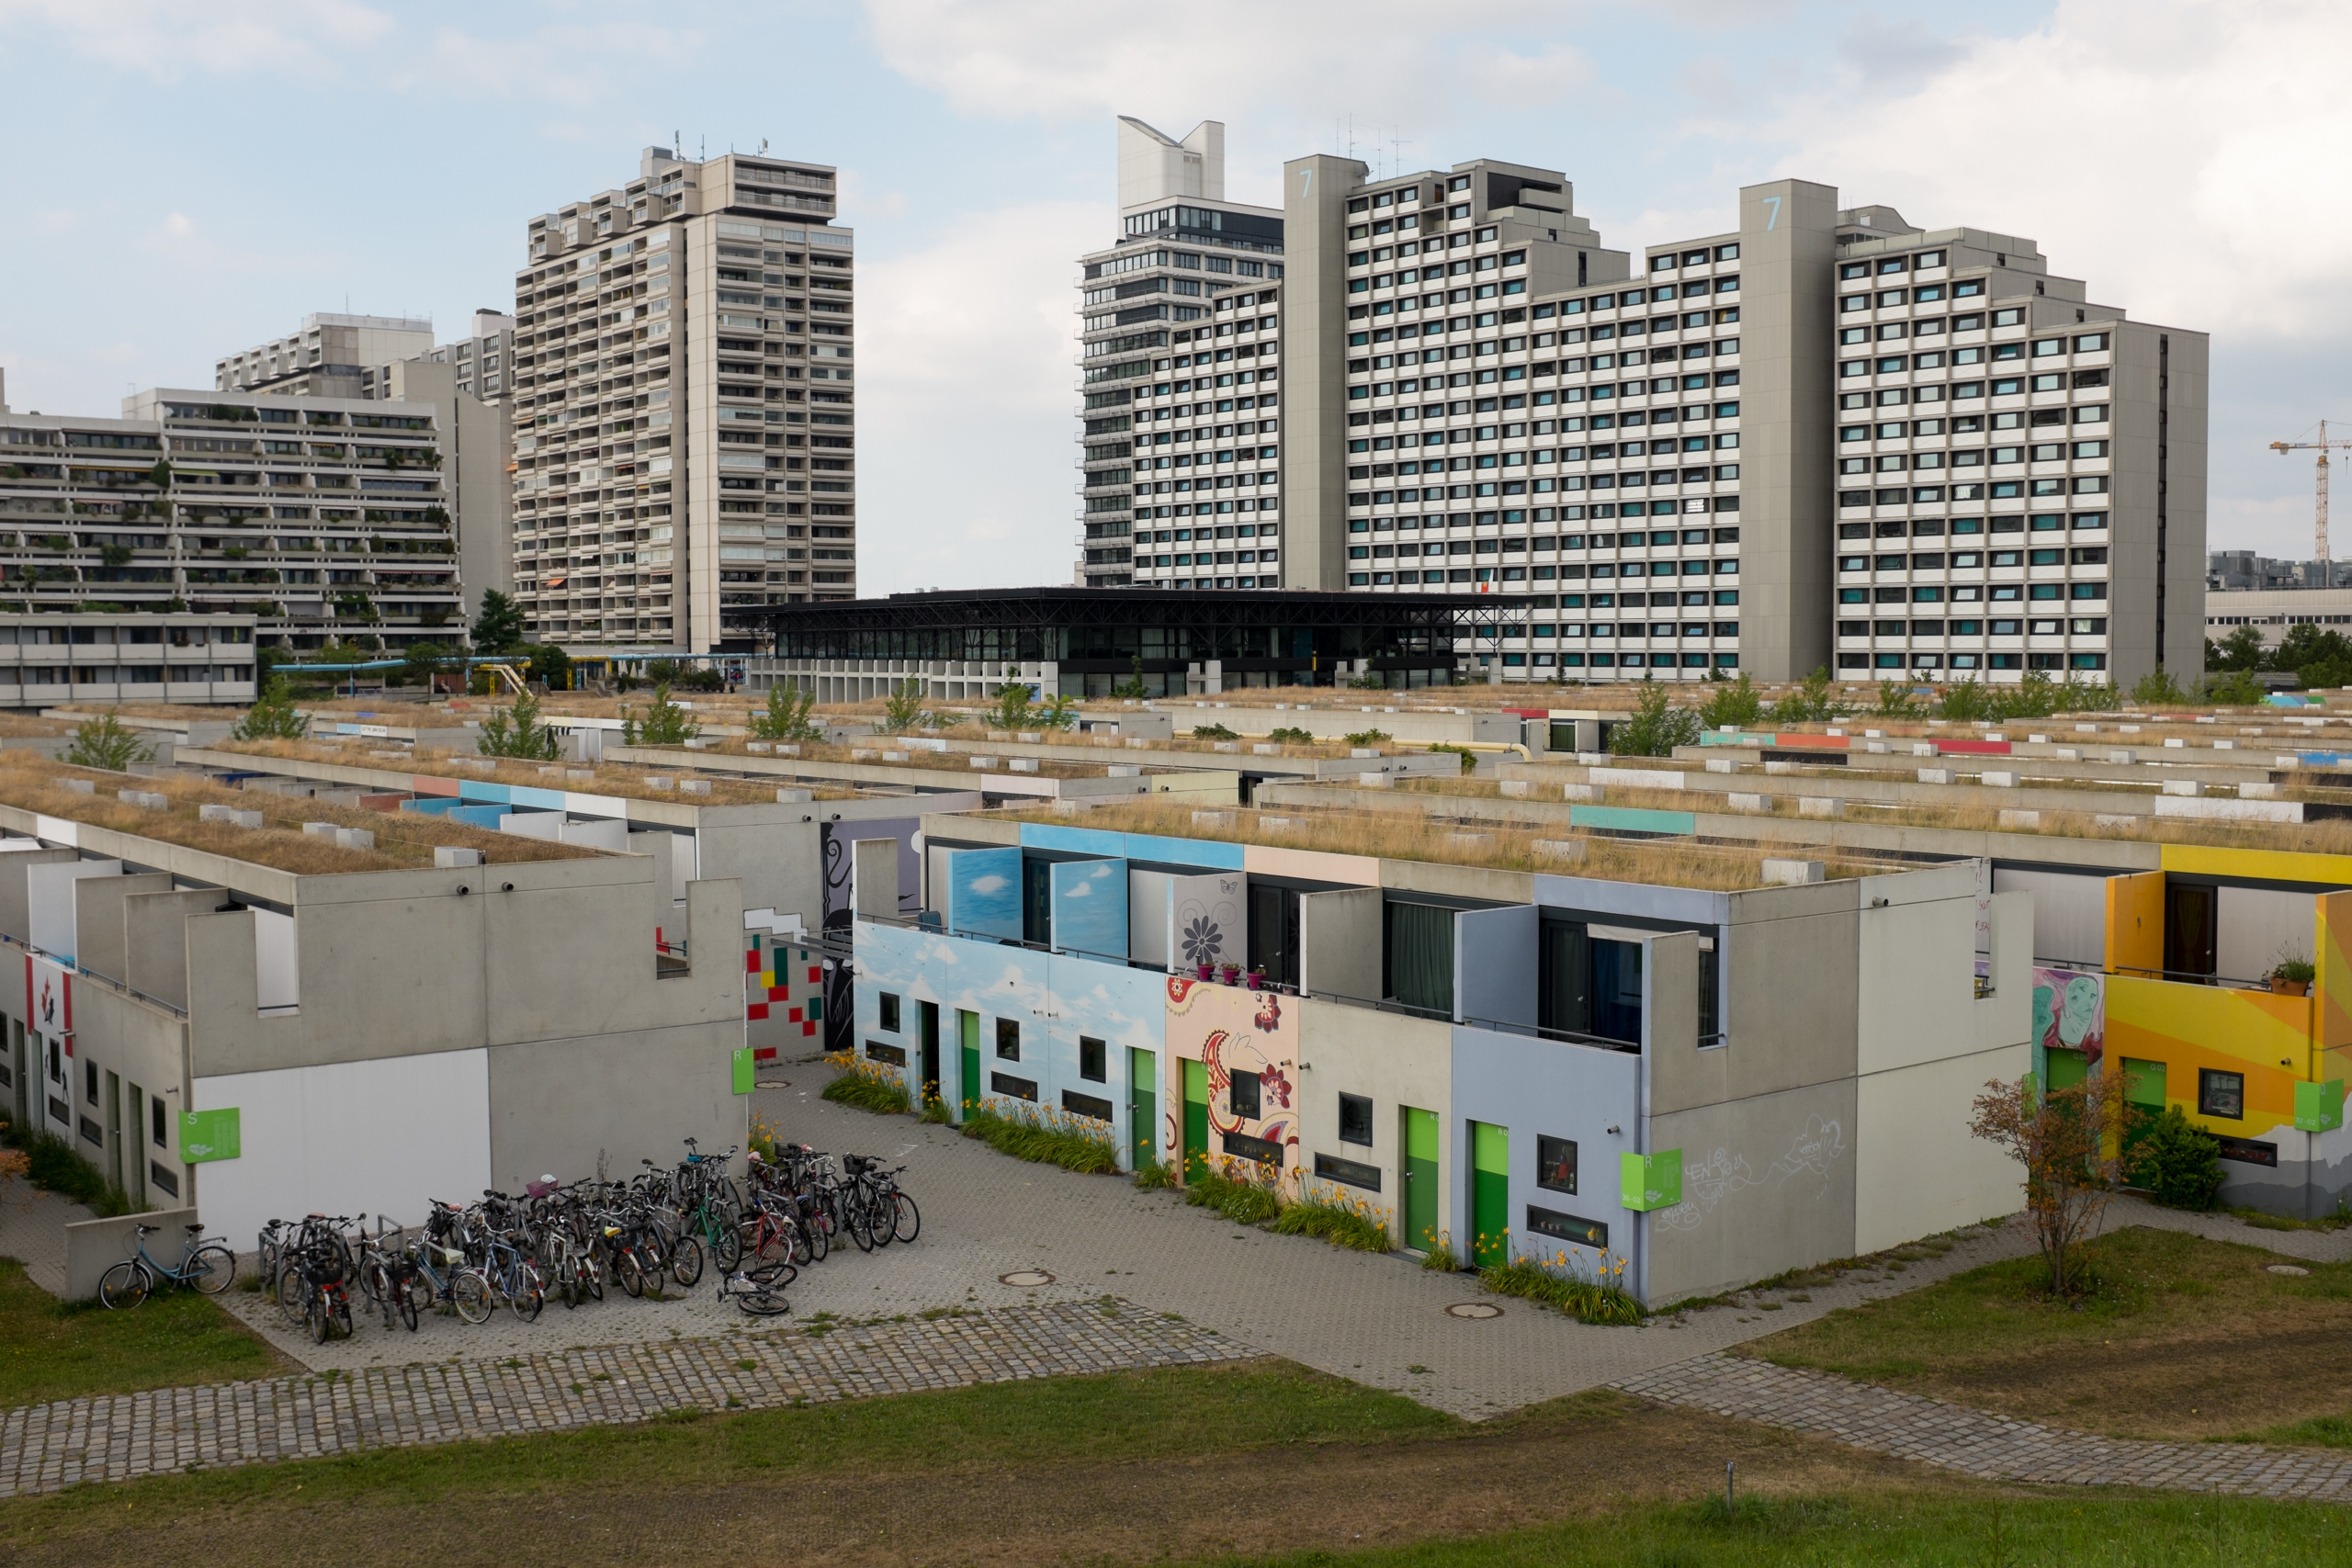 The Olympic Village in Munich, host of the 1972 Summer Olympics, photographed in July 2016.